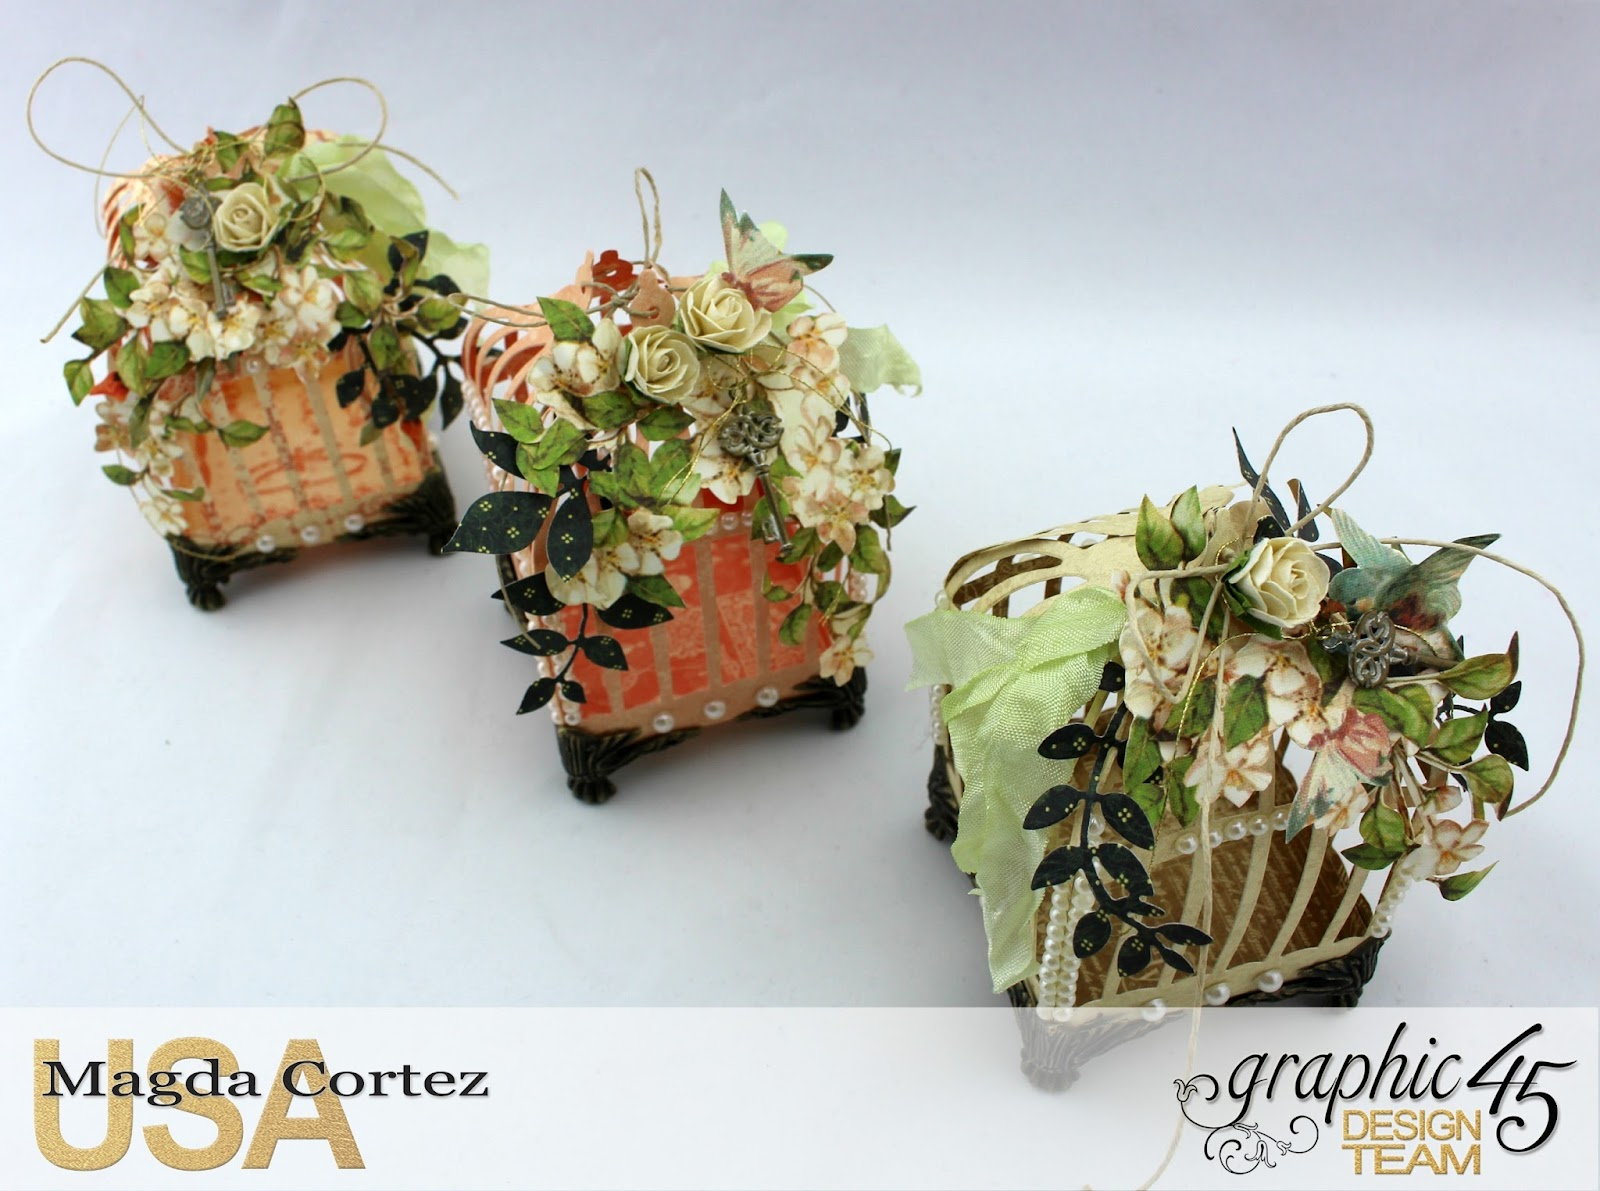 3D Birdcages Simply 45-Wedding Favor- Secret Garden By Magda Cortez, Product By G45, Photo 06 of 06, Project with Tutorial.jpg